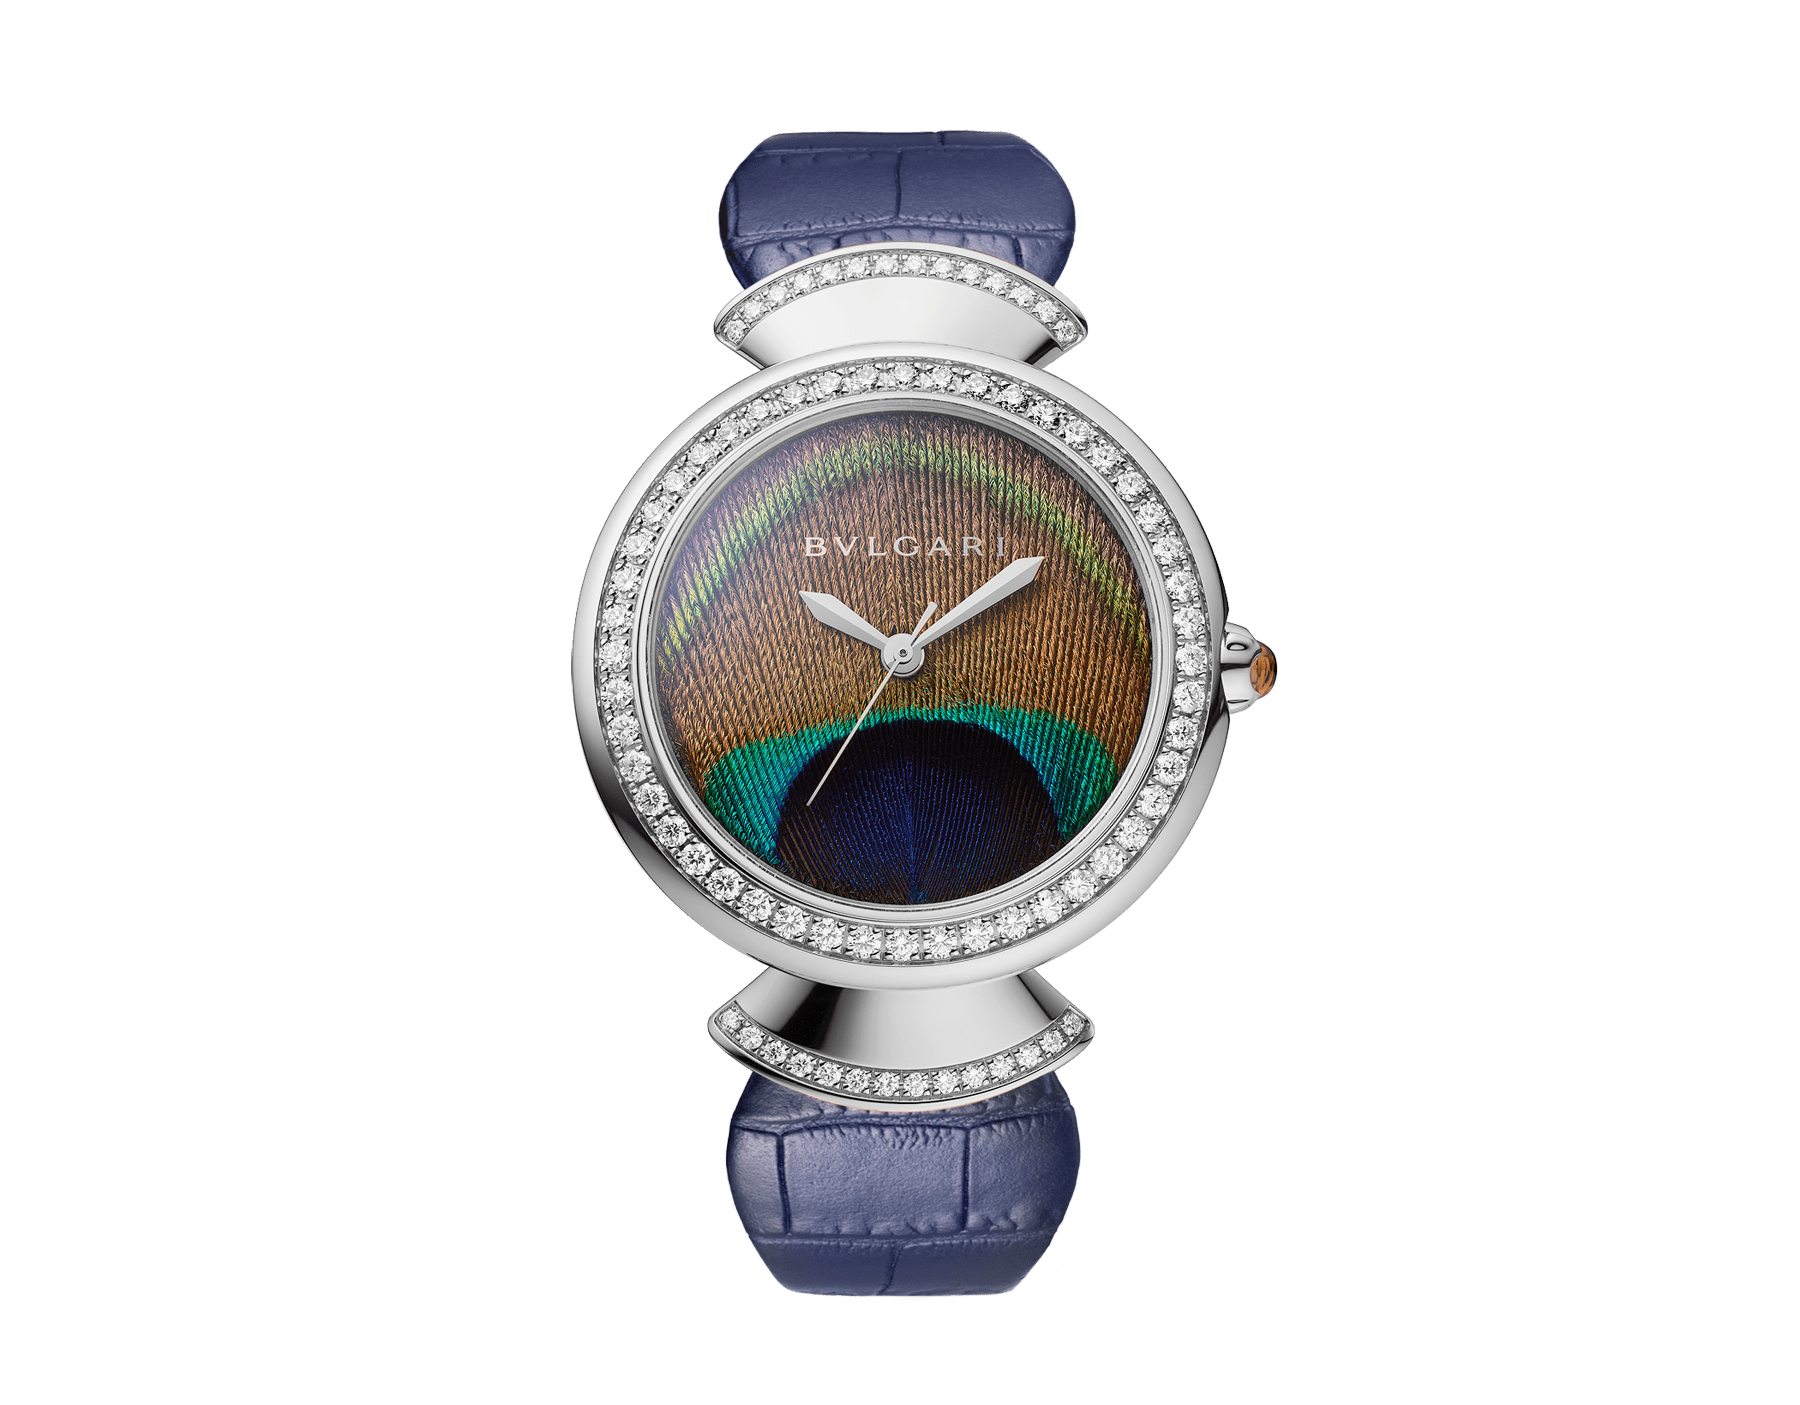 DIVAS' DREAM watch with mechanical manufacture movement, automatic winding, 18 kt white gold case, 18 kt white gold bezel and fan-shaped links both set with brilliant-cut diamonds, natural peacock feather dial and blue alligator bracelet 103263 image 1